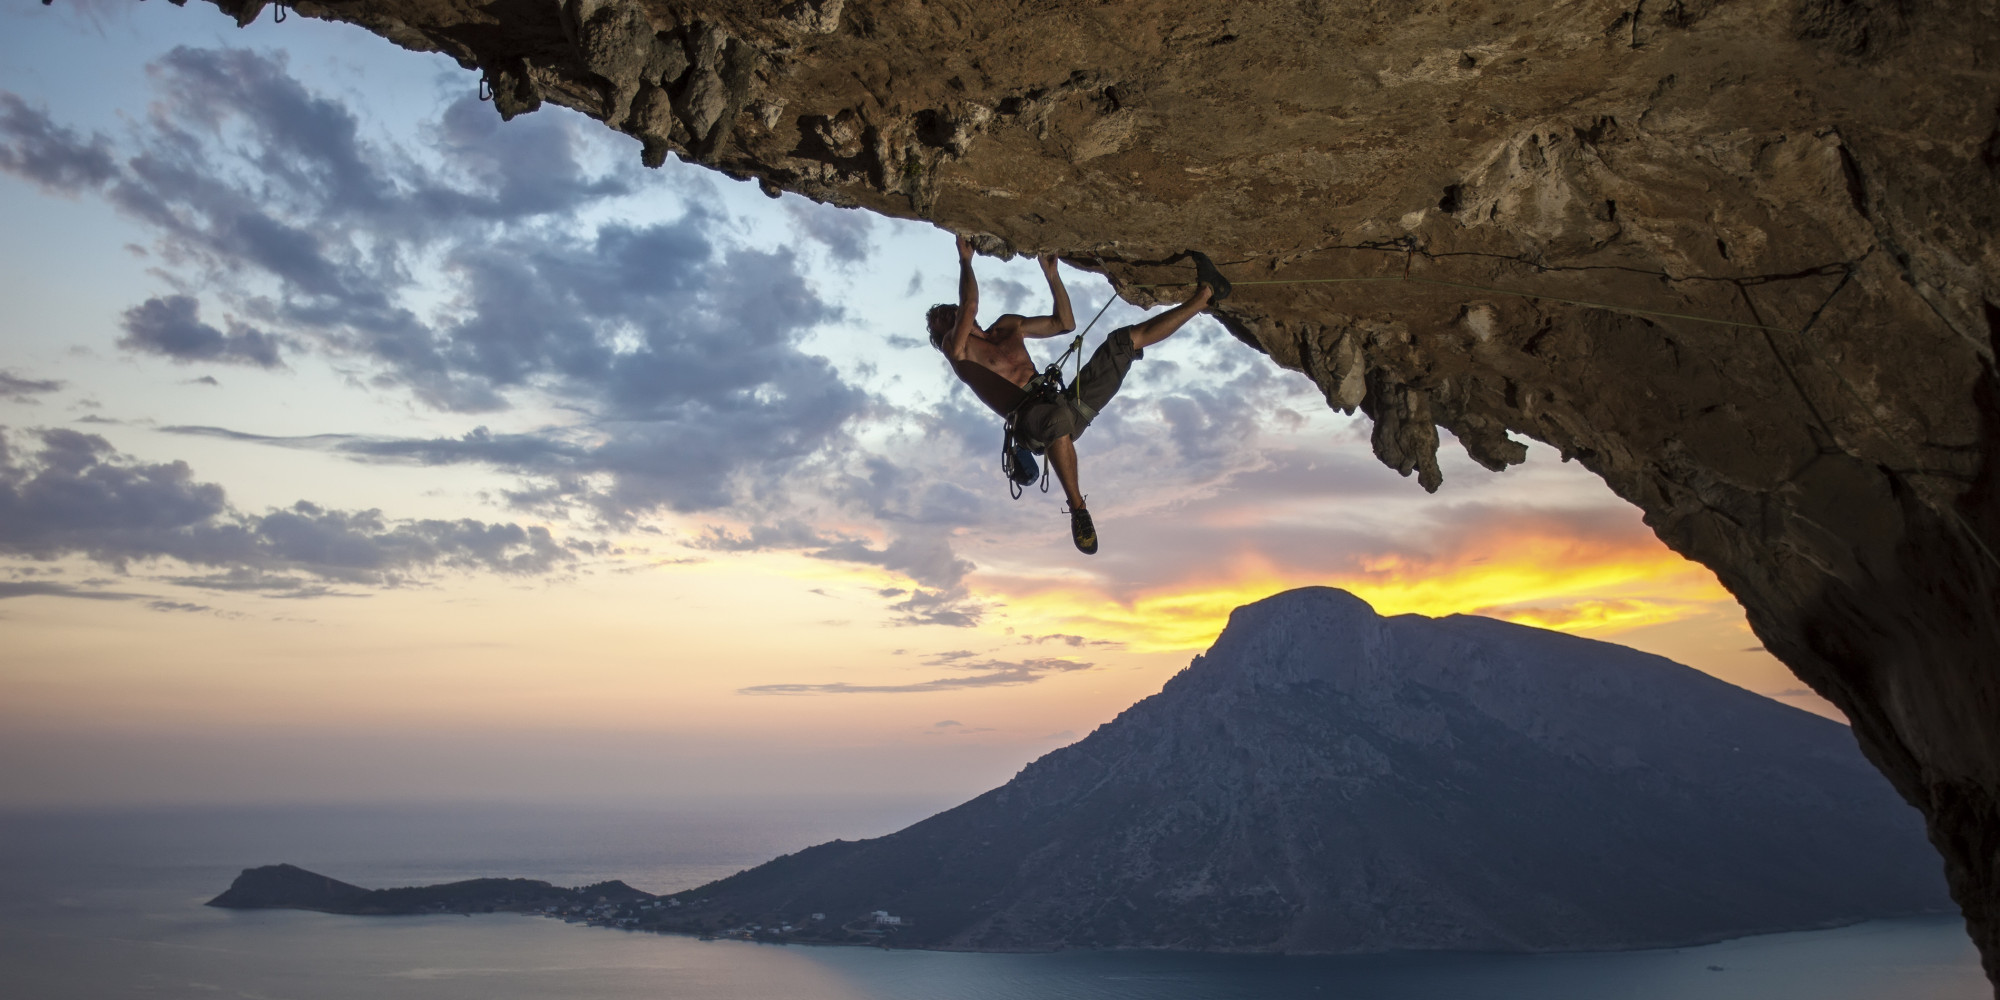 ROCK-CLIMBING-SUNSET.jpg